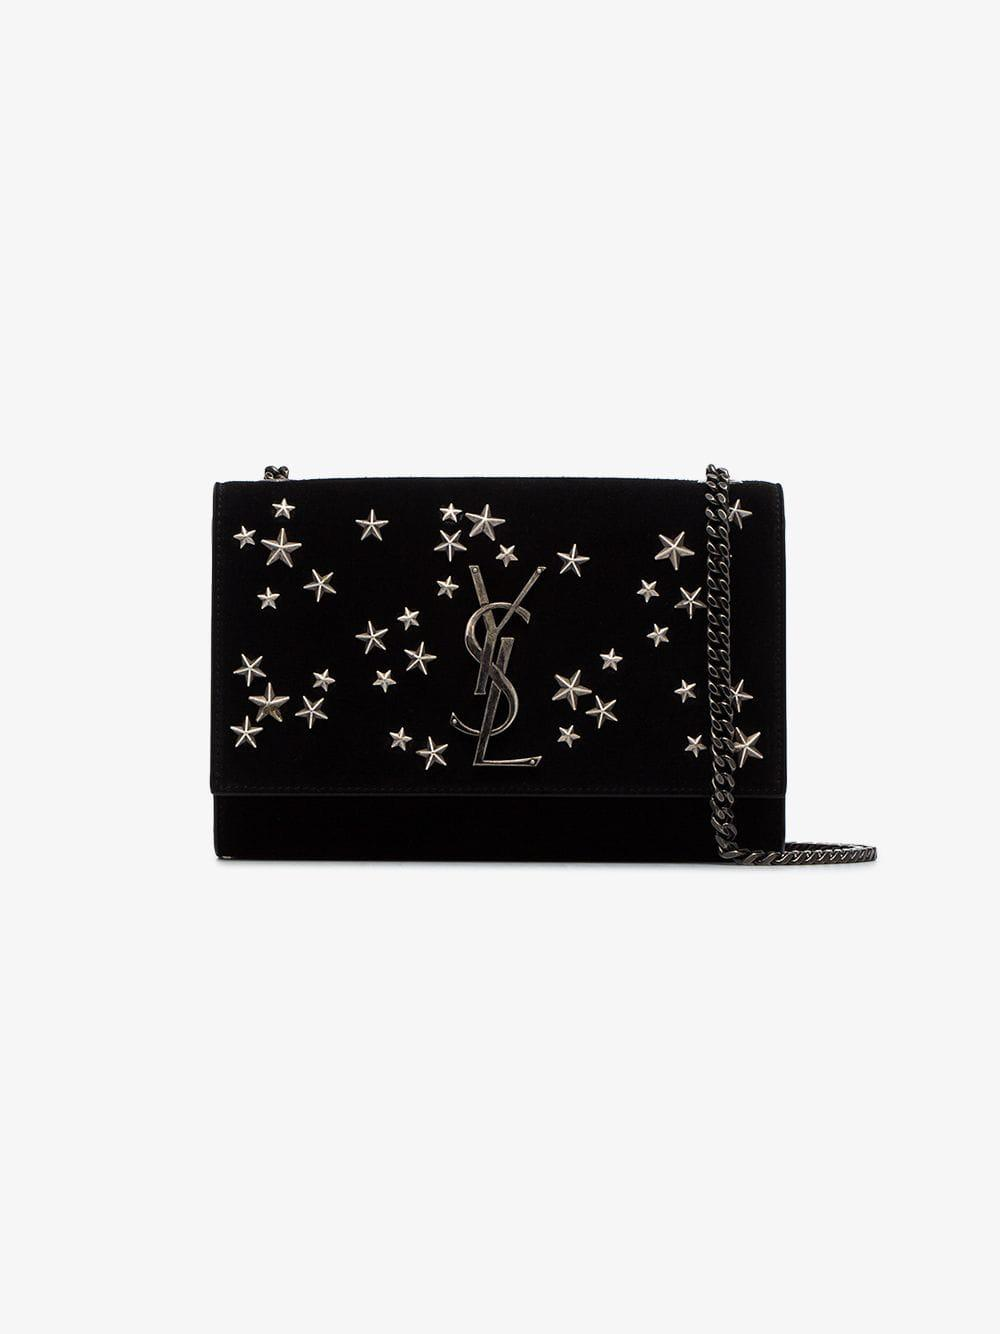 Saint Laurent - Black Kate Star Embellished Suede Shoulder Bag - Lyst. View  fullscreen 63abd4704d1ce